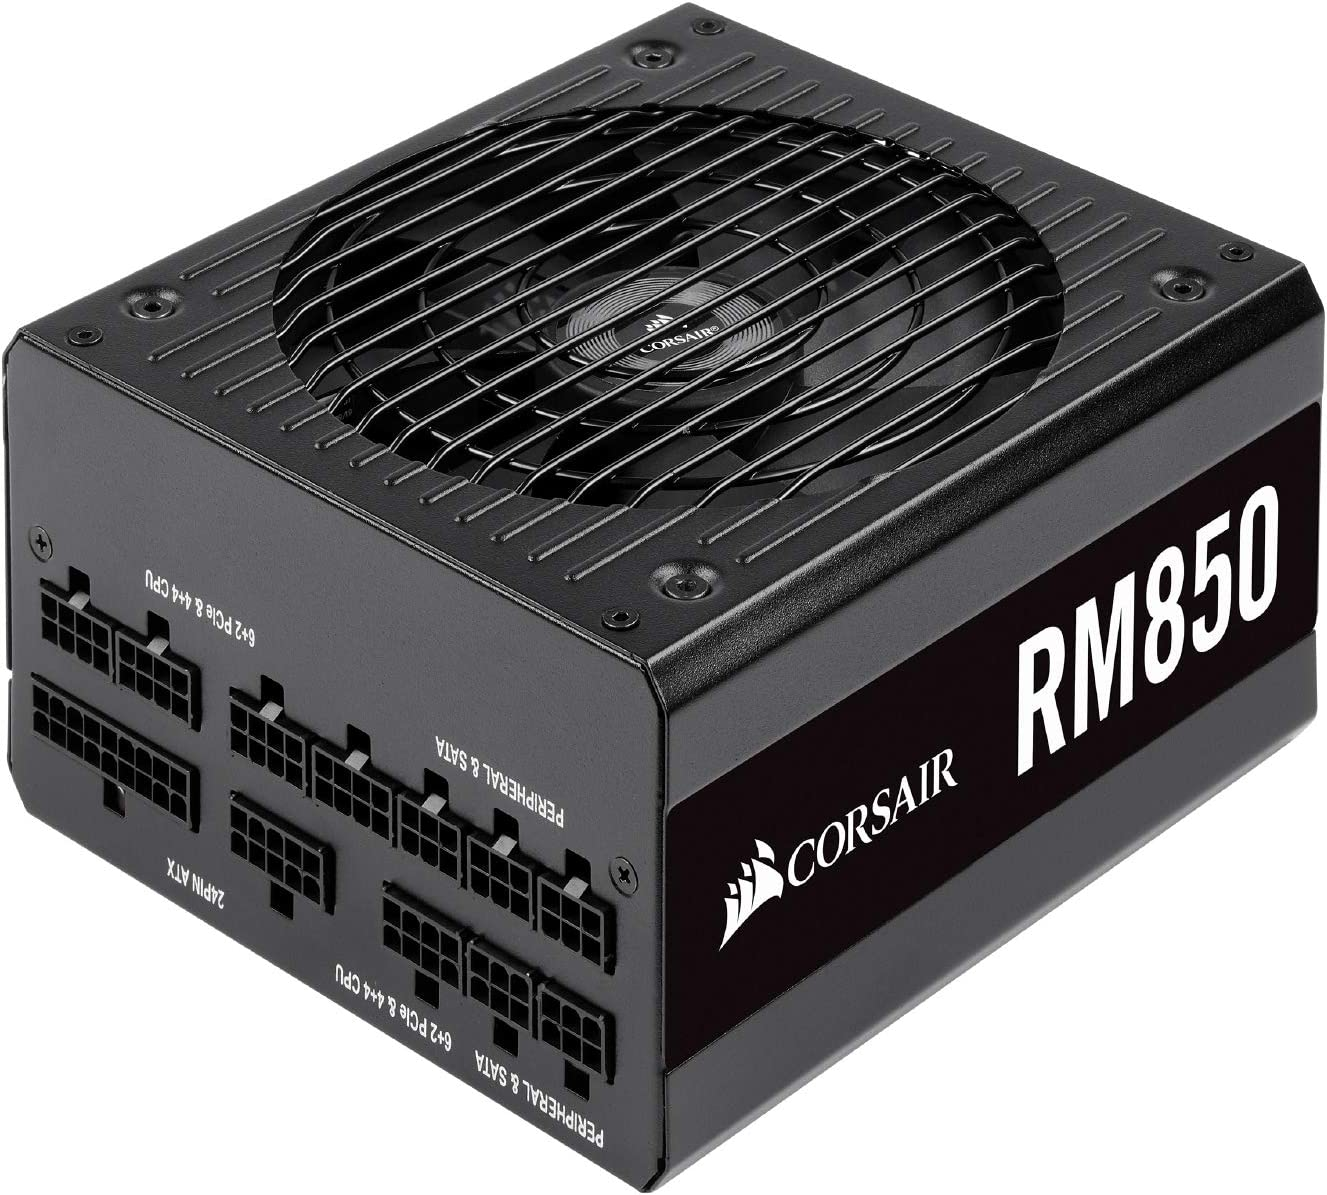 CORSAIR RM Series, RM850, 850 Watt, 80+ Gold Certified, Fully Modular Power Supply, Microsoft Modern Standby